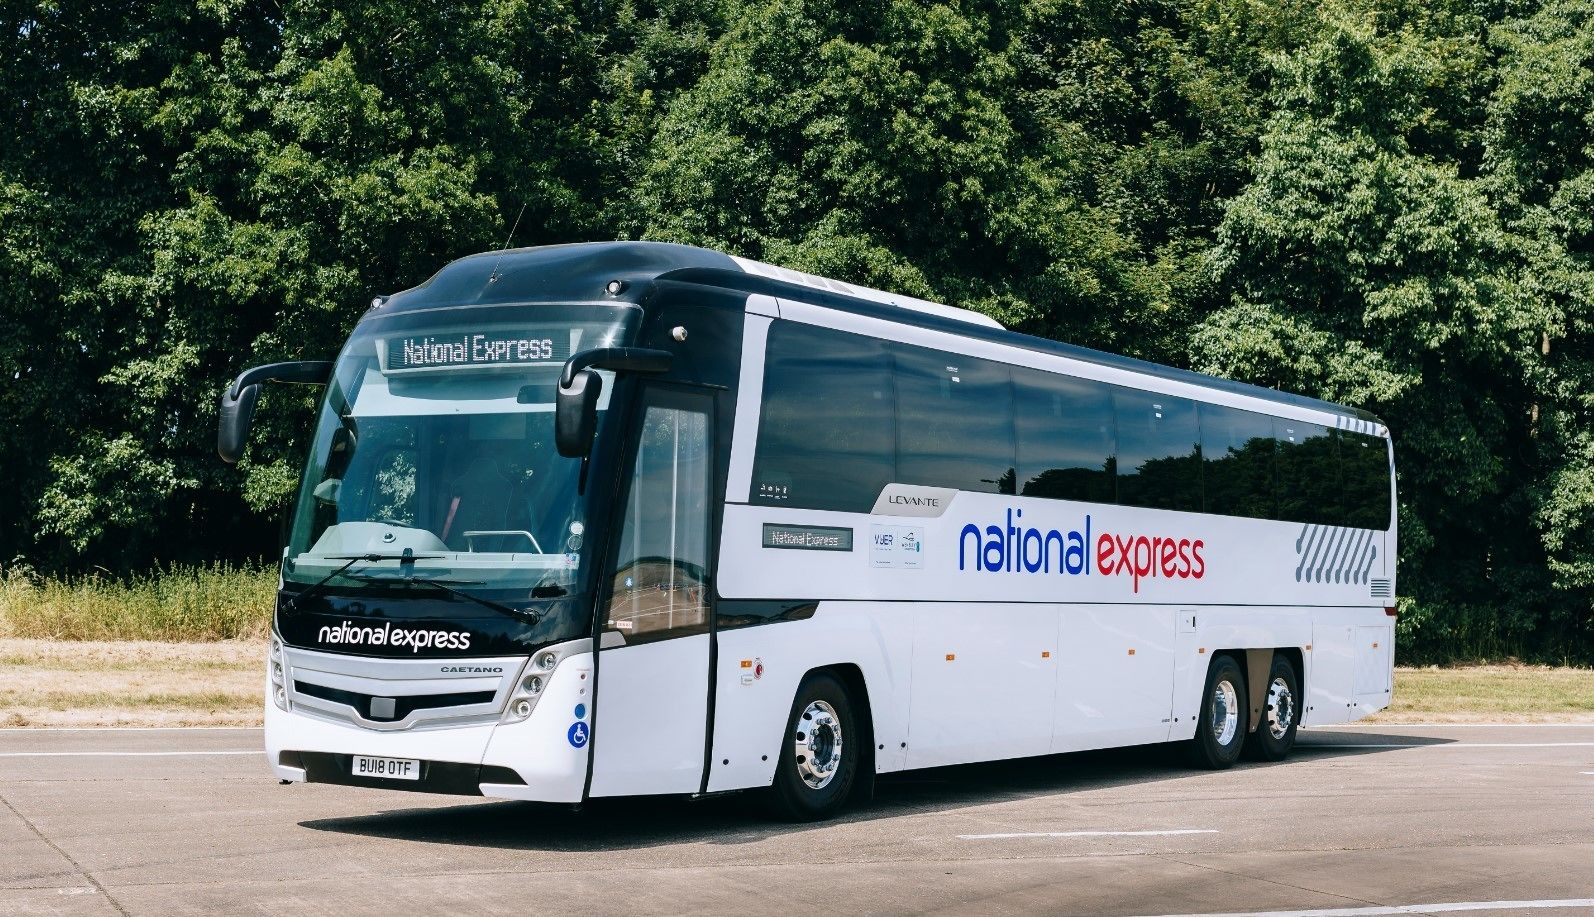 Shared Coach - Stansted Airport (STN) to Central London Drop-off Points